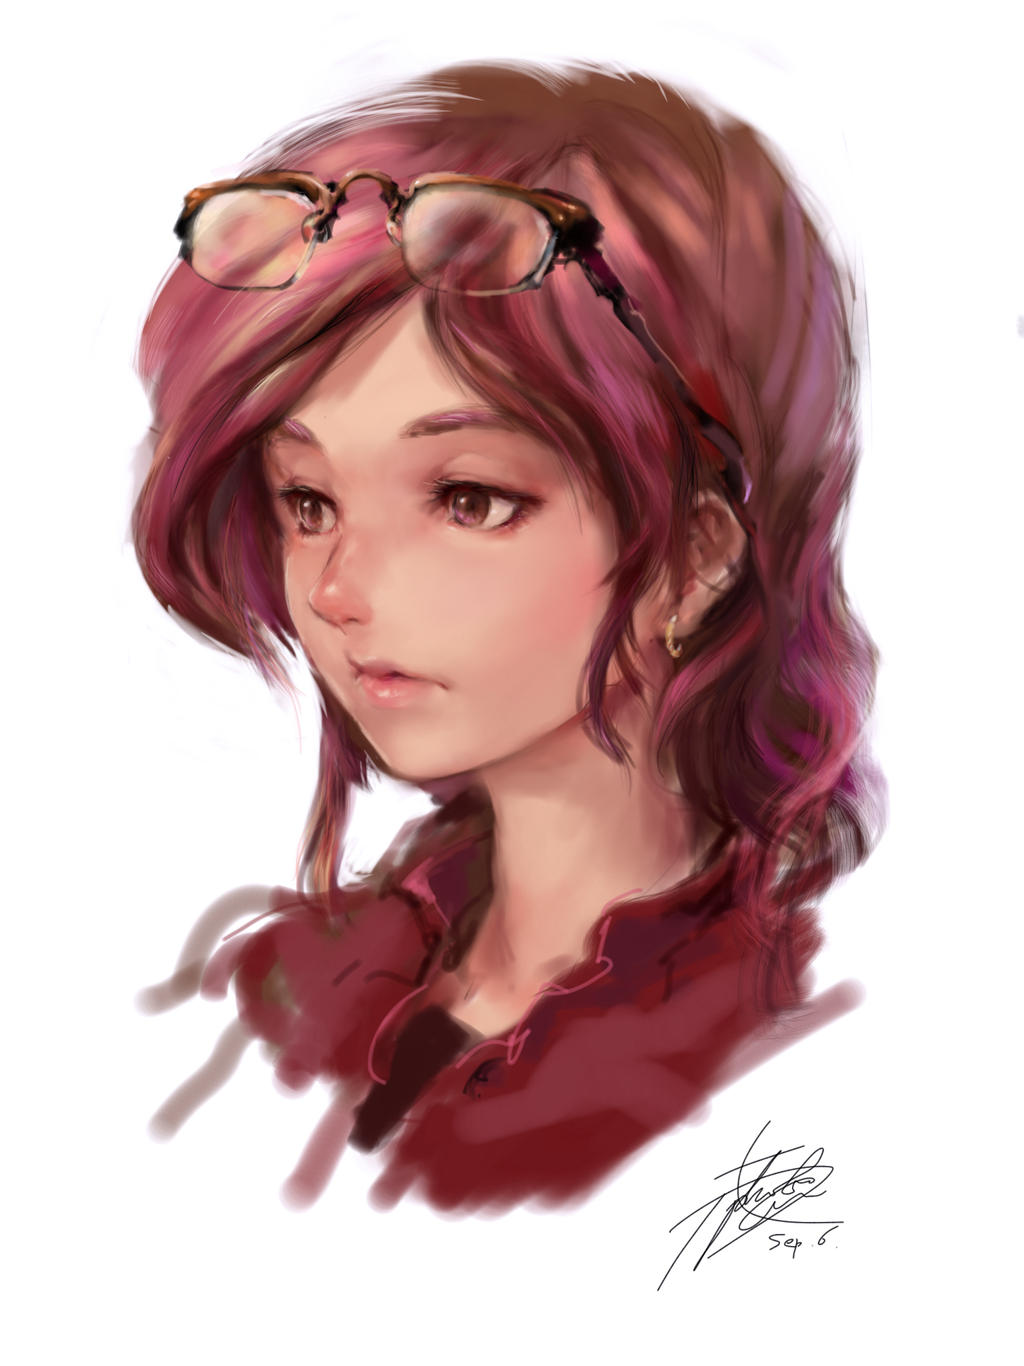 iPad finger drawing- Yu rana, 5 years later by ptcrow